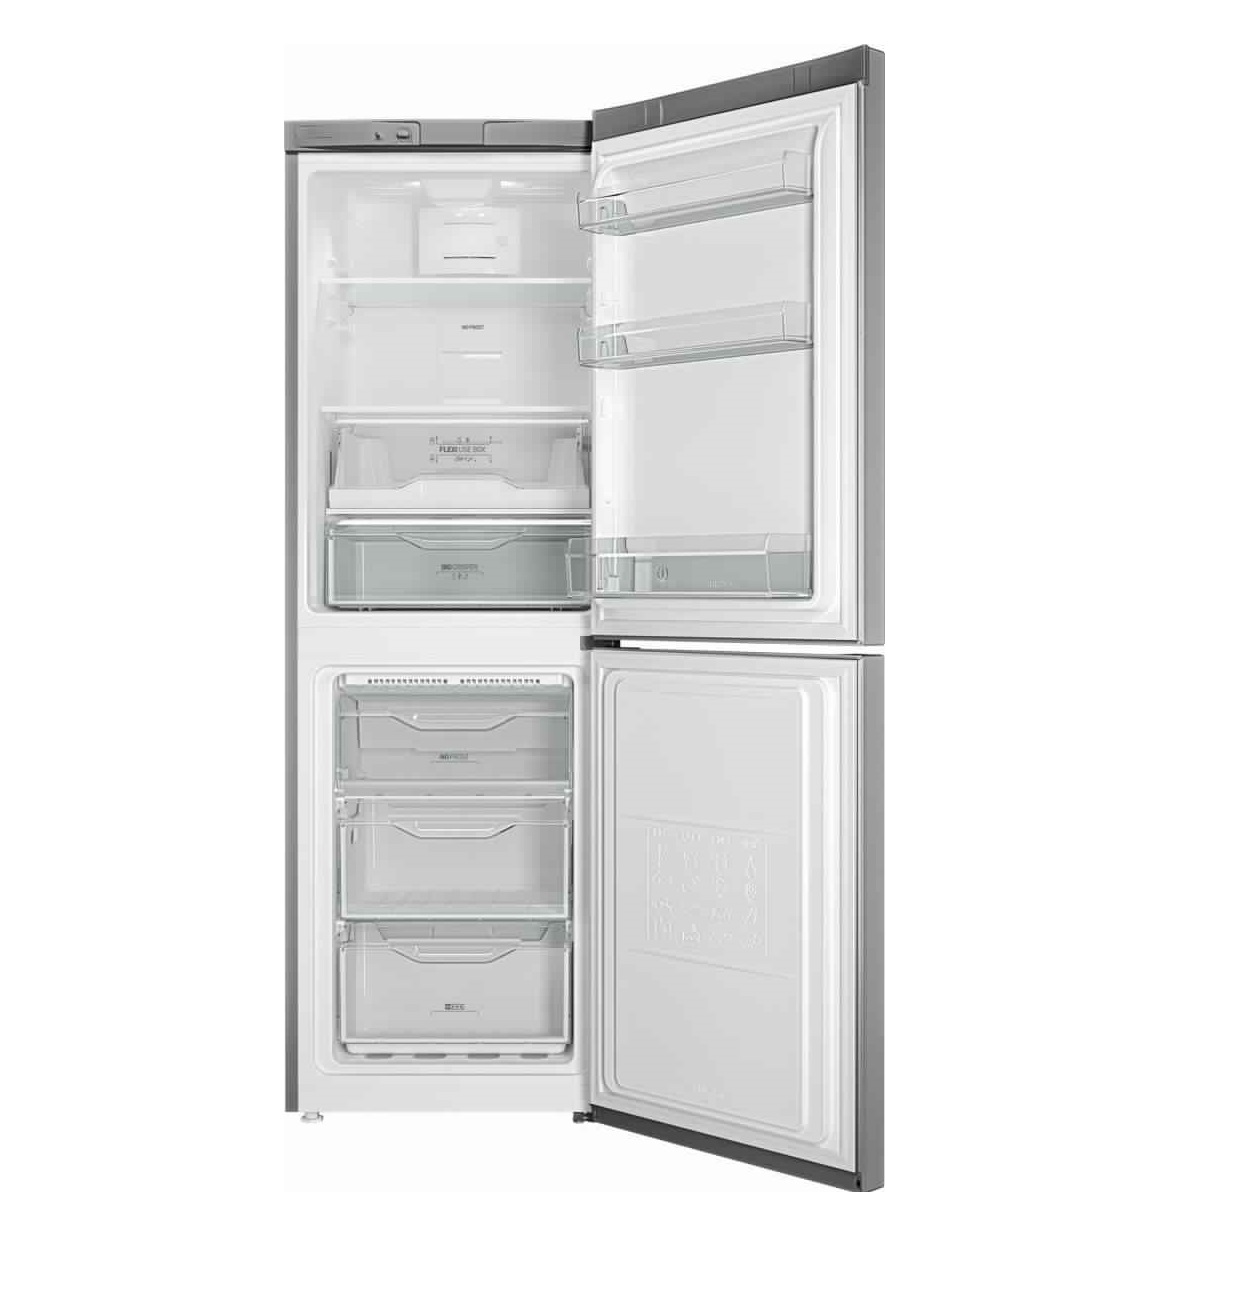 Achat Refrigerateur Combine Refrigerateur Hotpoint Nmbl 1922 Fwha